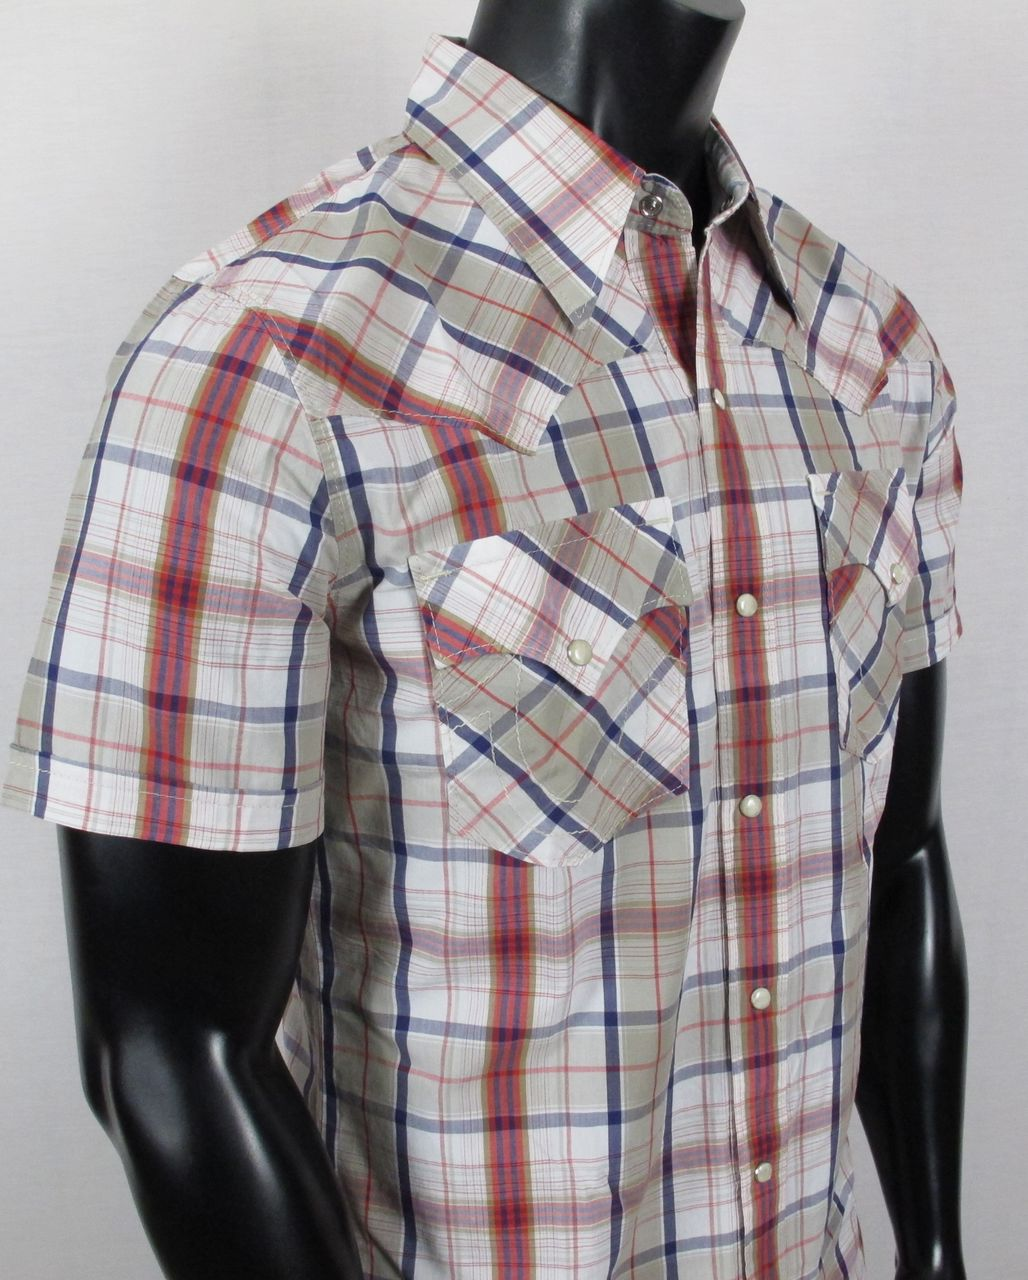 NWT-Mens-TRUE-RELIGION-Woven-Button-up-Shirt-MICK-PLAID-in-CHALK-Short-Sleeve